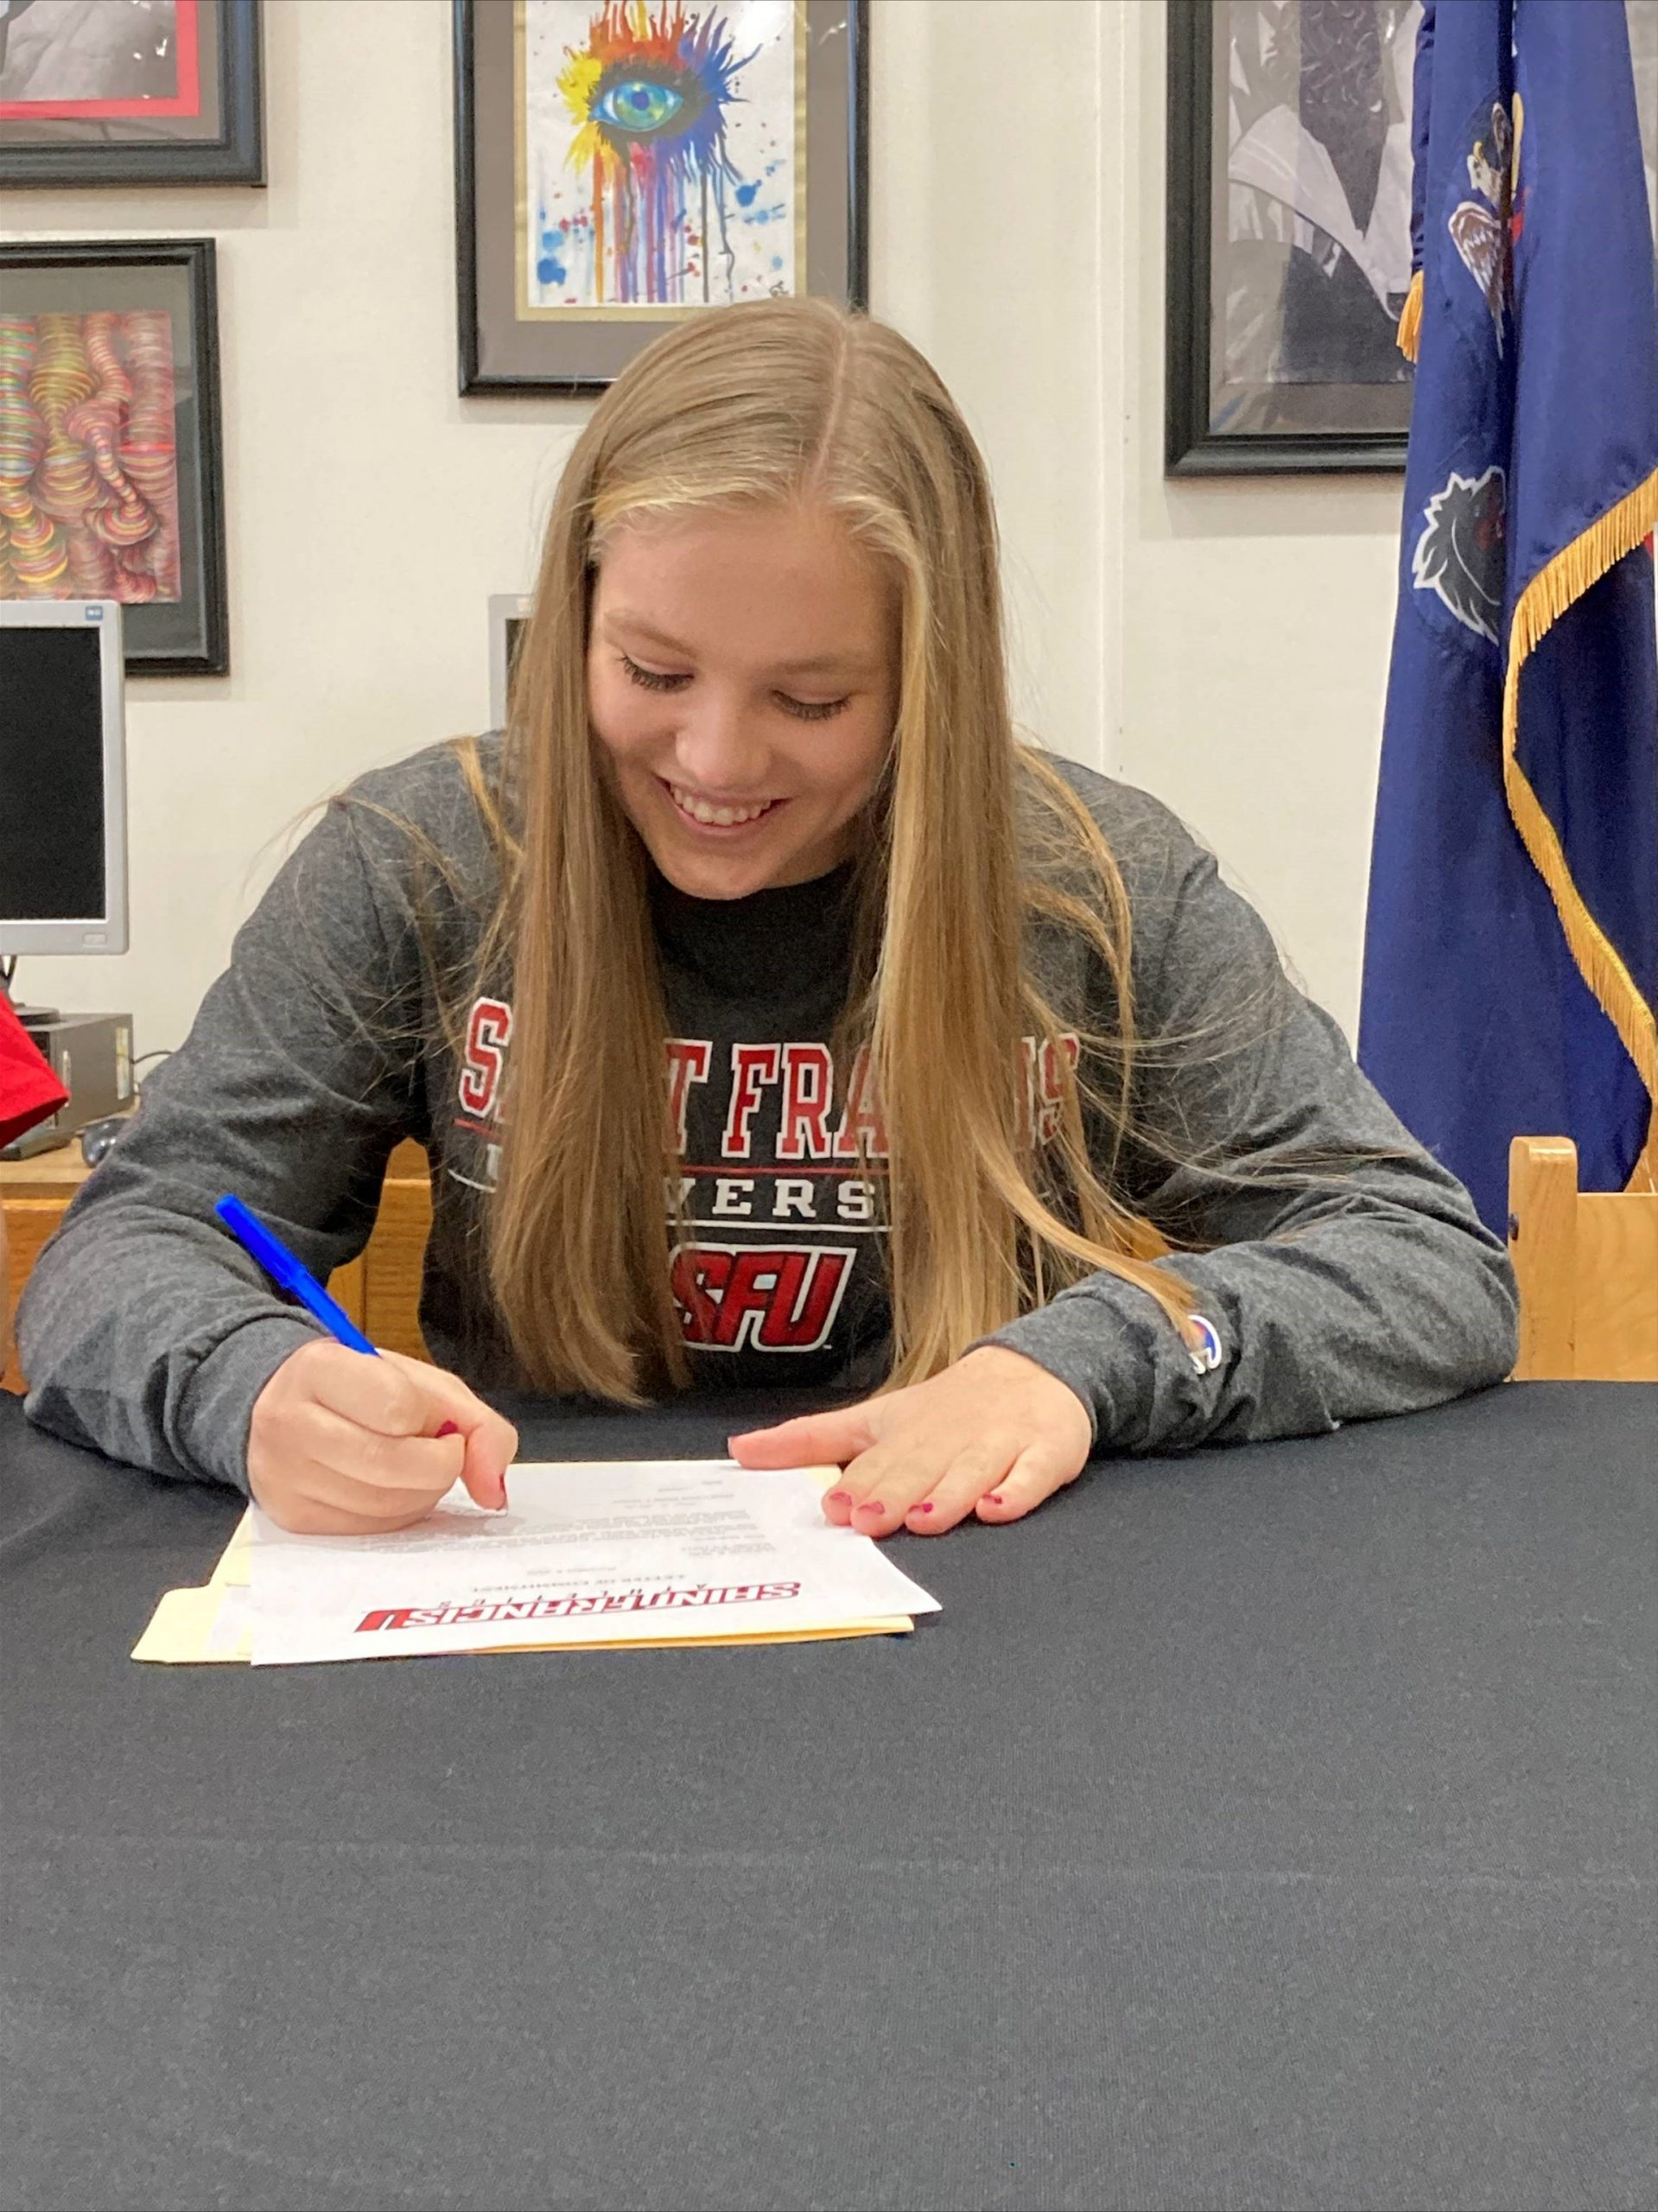 Congratulations to McKenzie Watt on signing to swim at Saint Francis University next year.